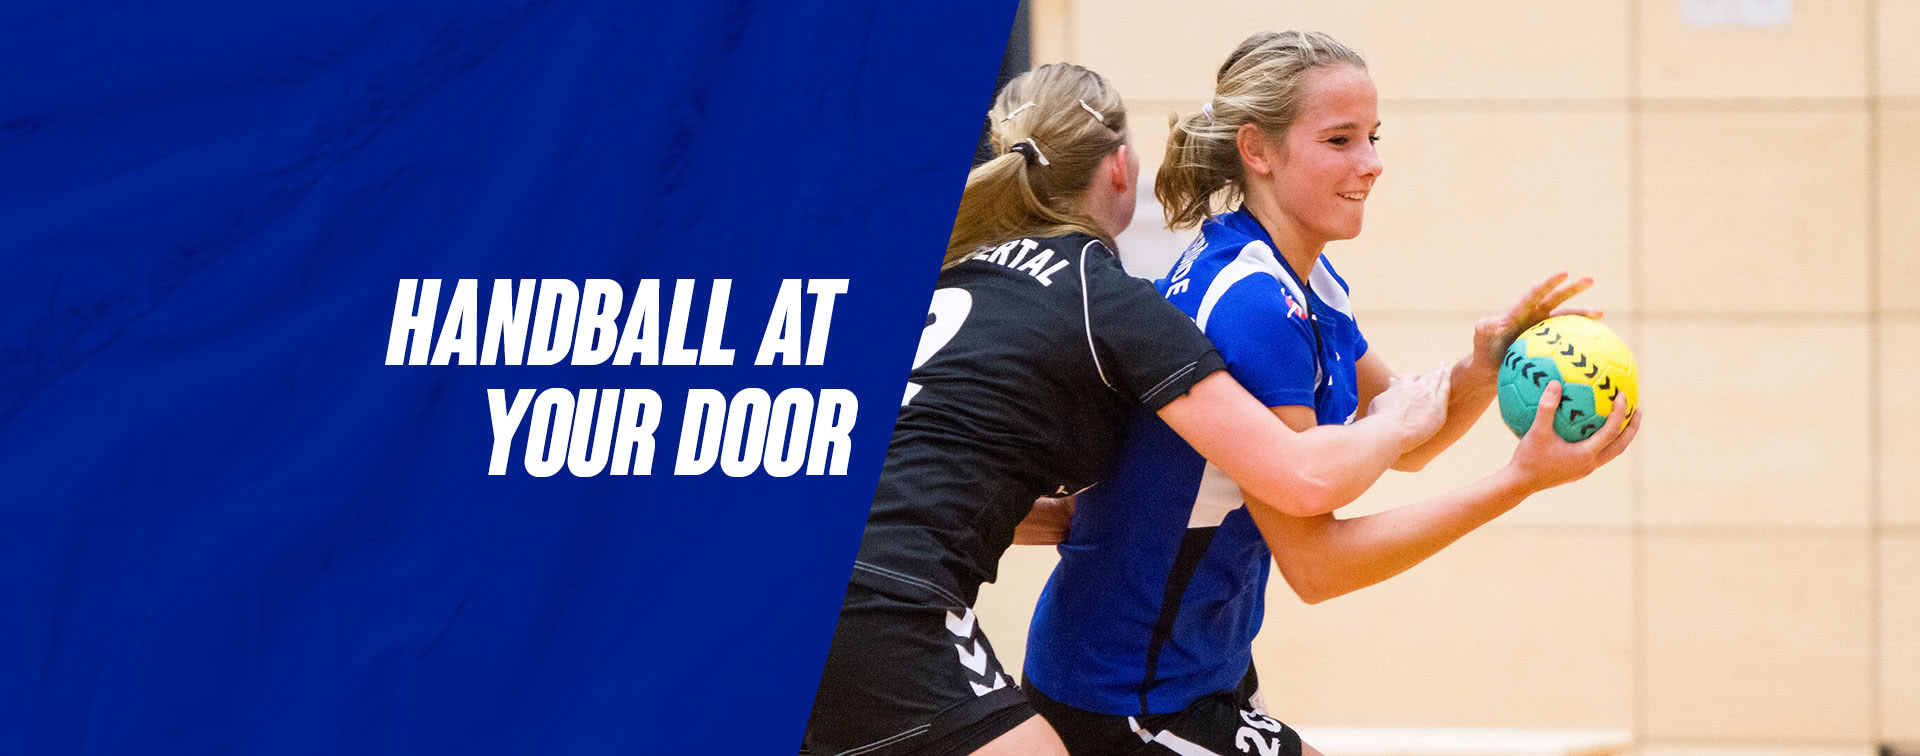 Handball at your door